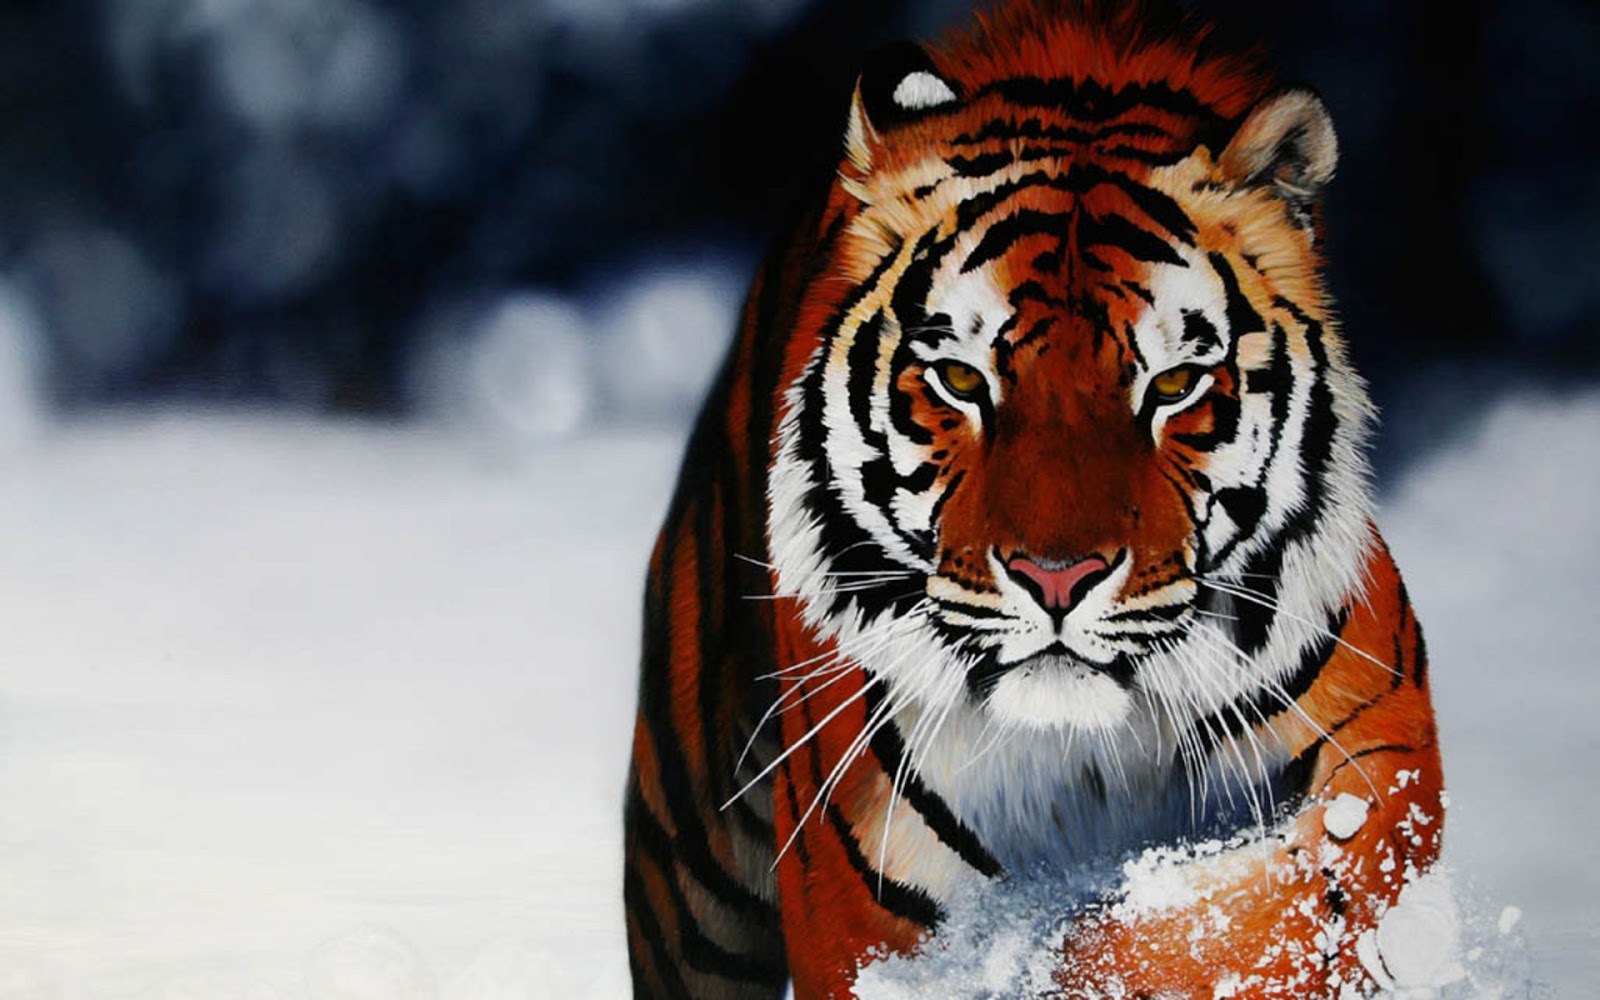 Download Animals Wallpapers In High Definition Resolution Wide Screen And Quality You Can See Set As A Desktop Background